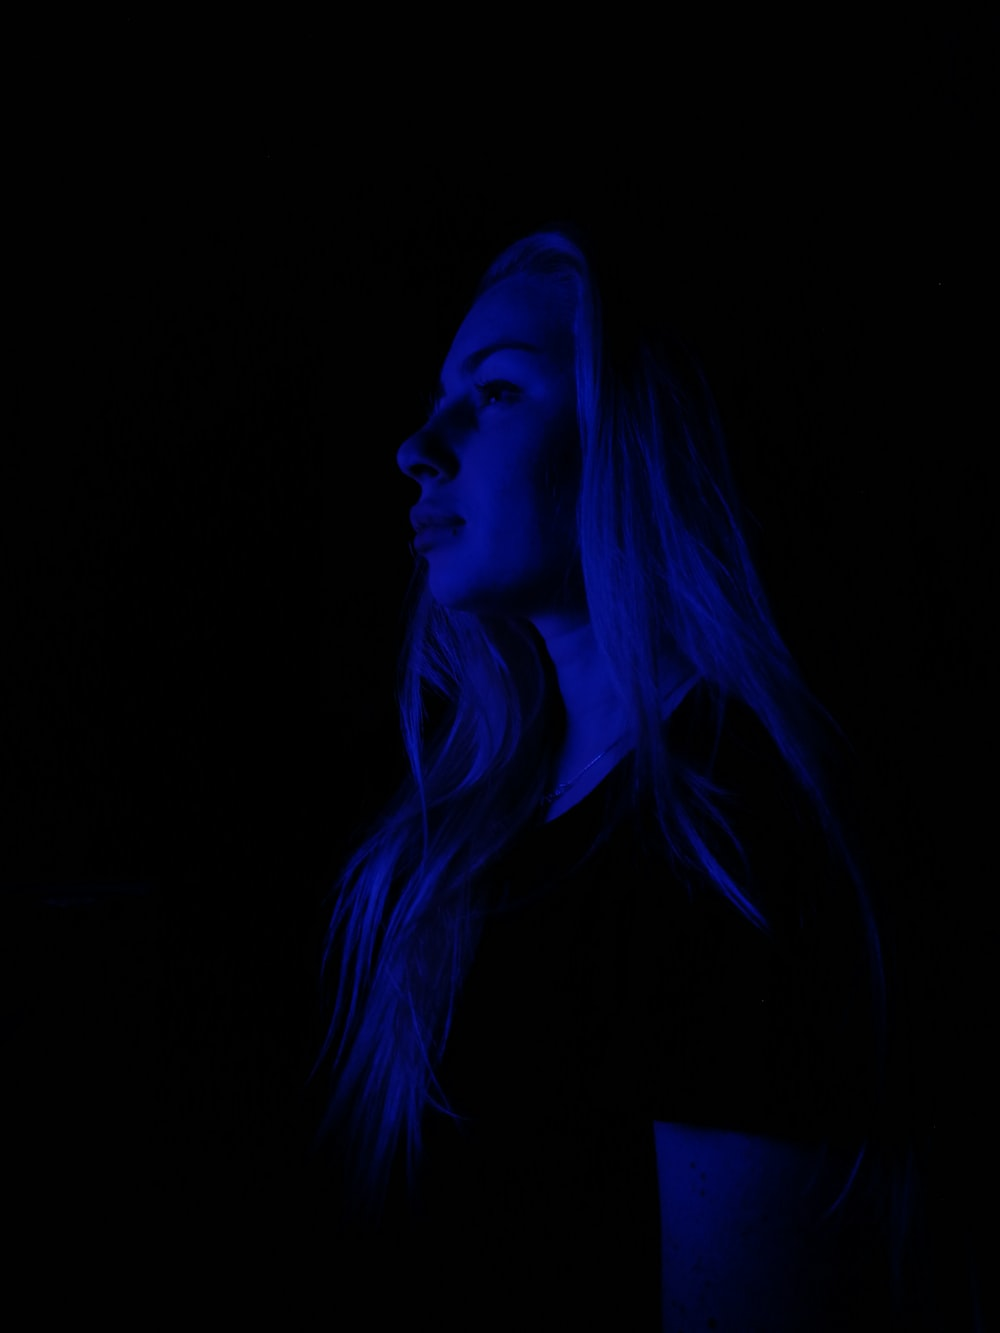 woman wearing t-shirt lighted with blue light